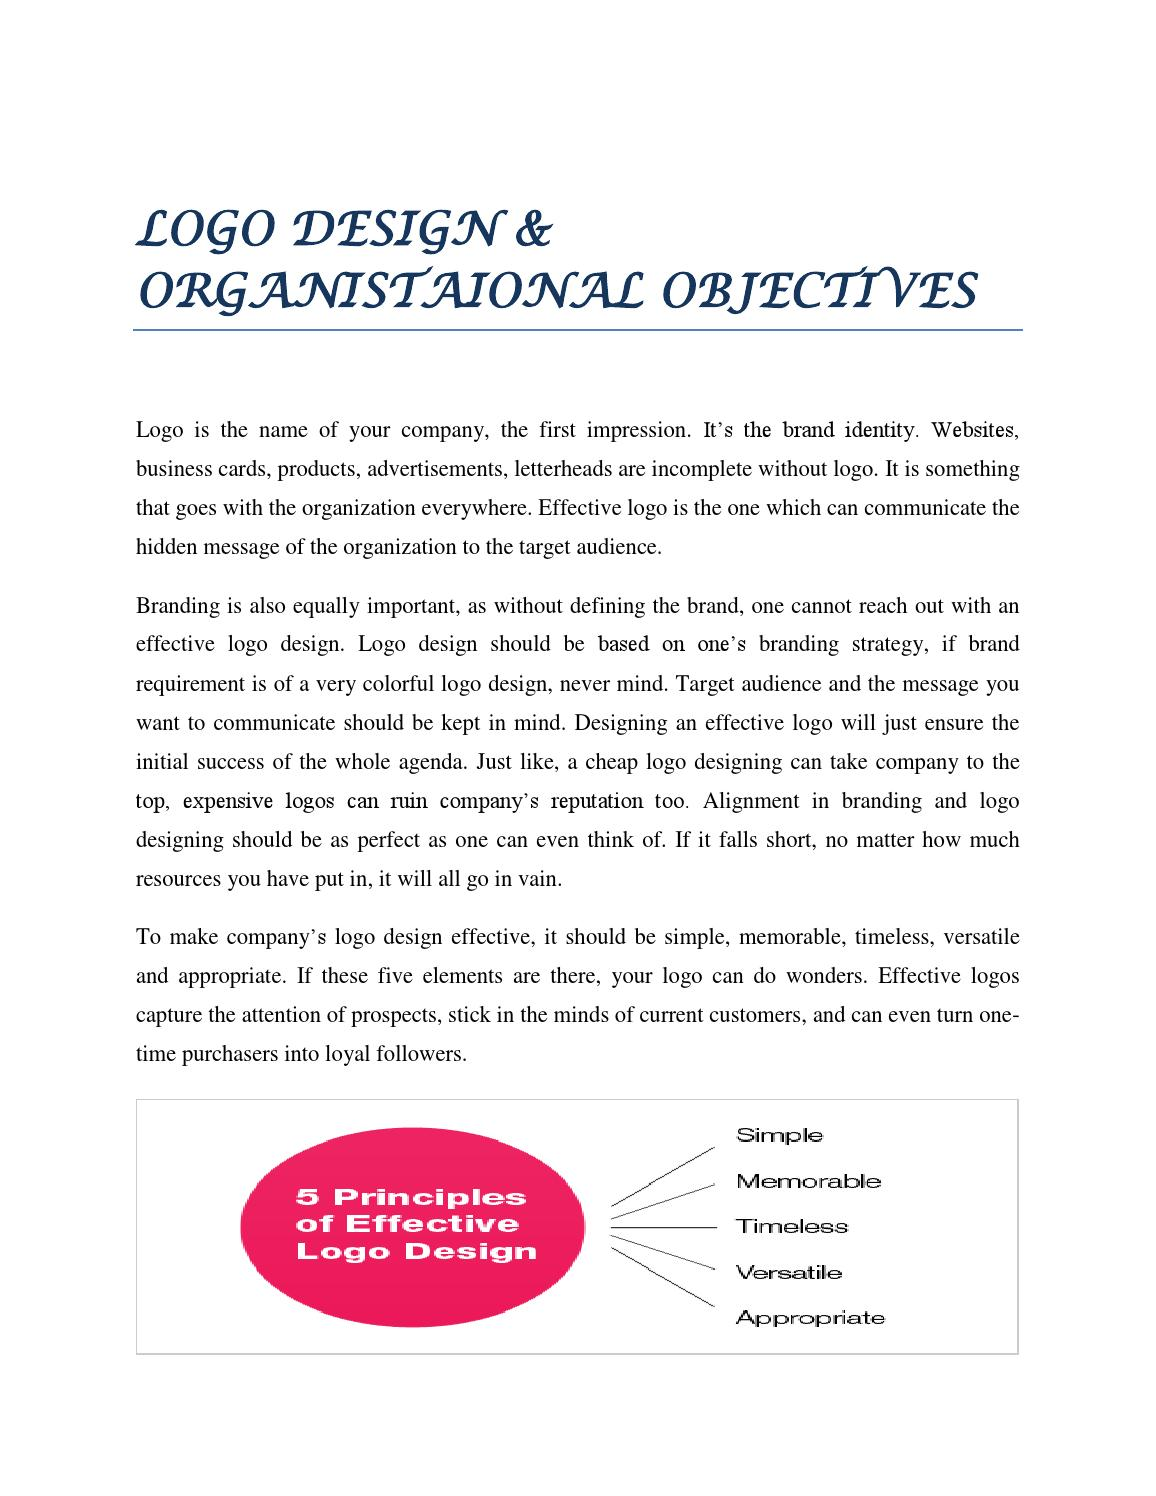 Logo Design Organistaional Objectives By Ryan Hudson Issuu,Repair Concrete Front Steps Design Ideas